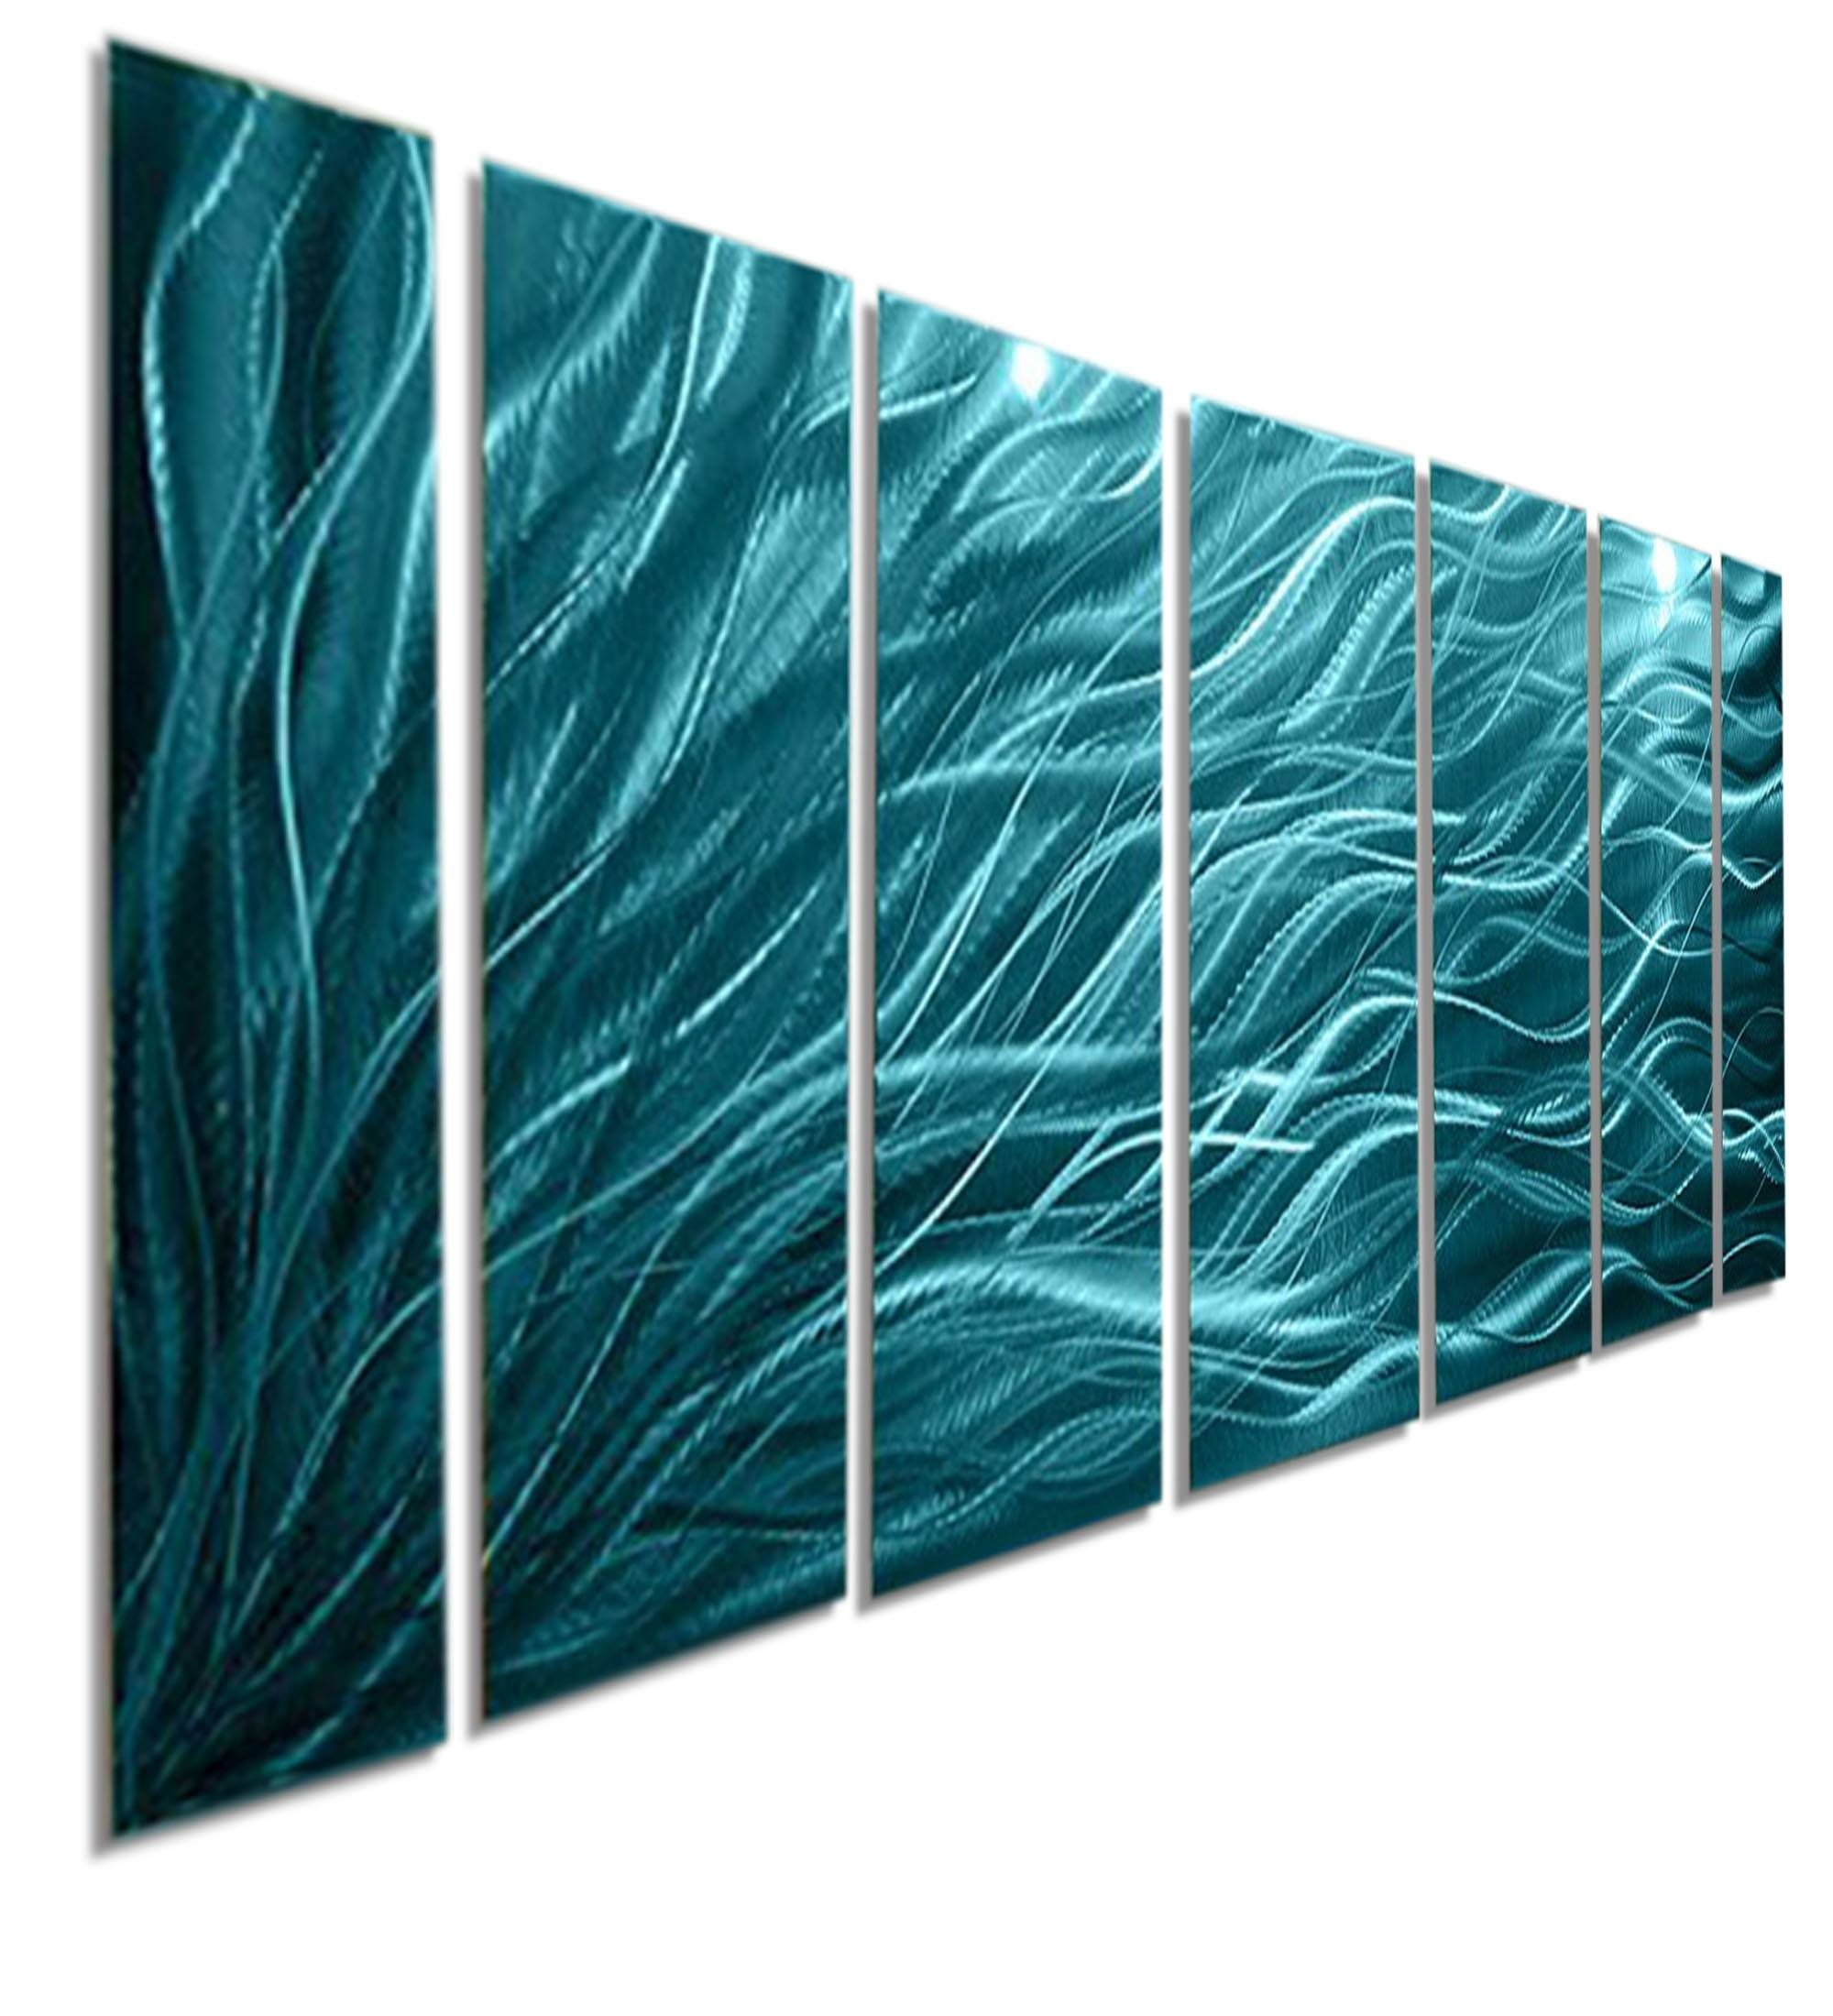 Rays Of Hope Aqua – Large Modern Abstract Metal Wall Artjon Inside Recent Turquoise Metal Wall Art (View 14 of 20)